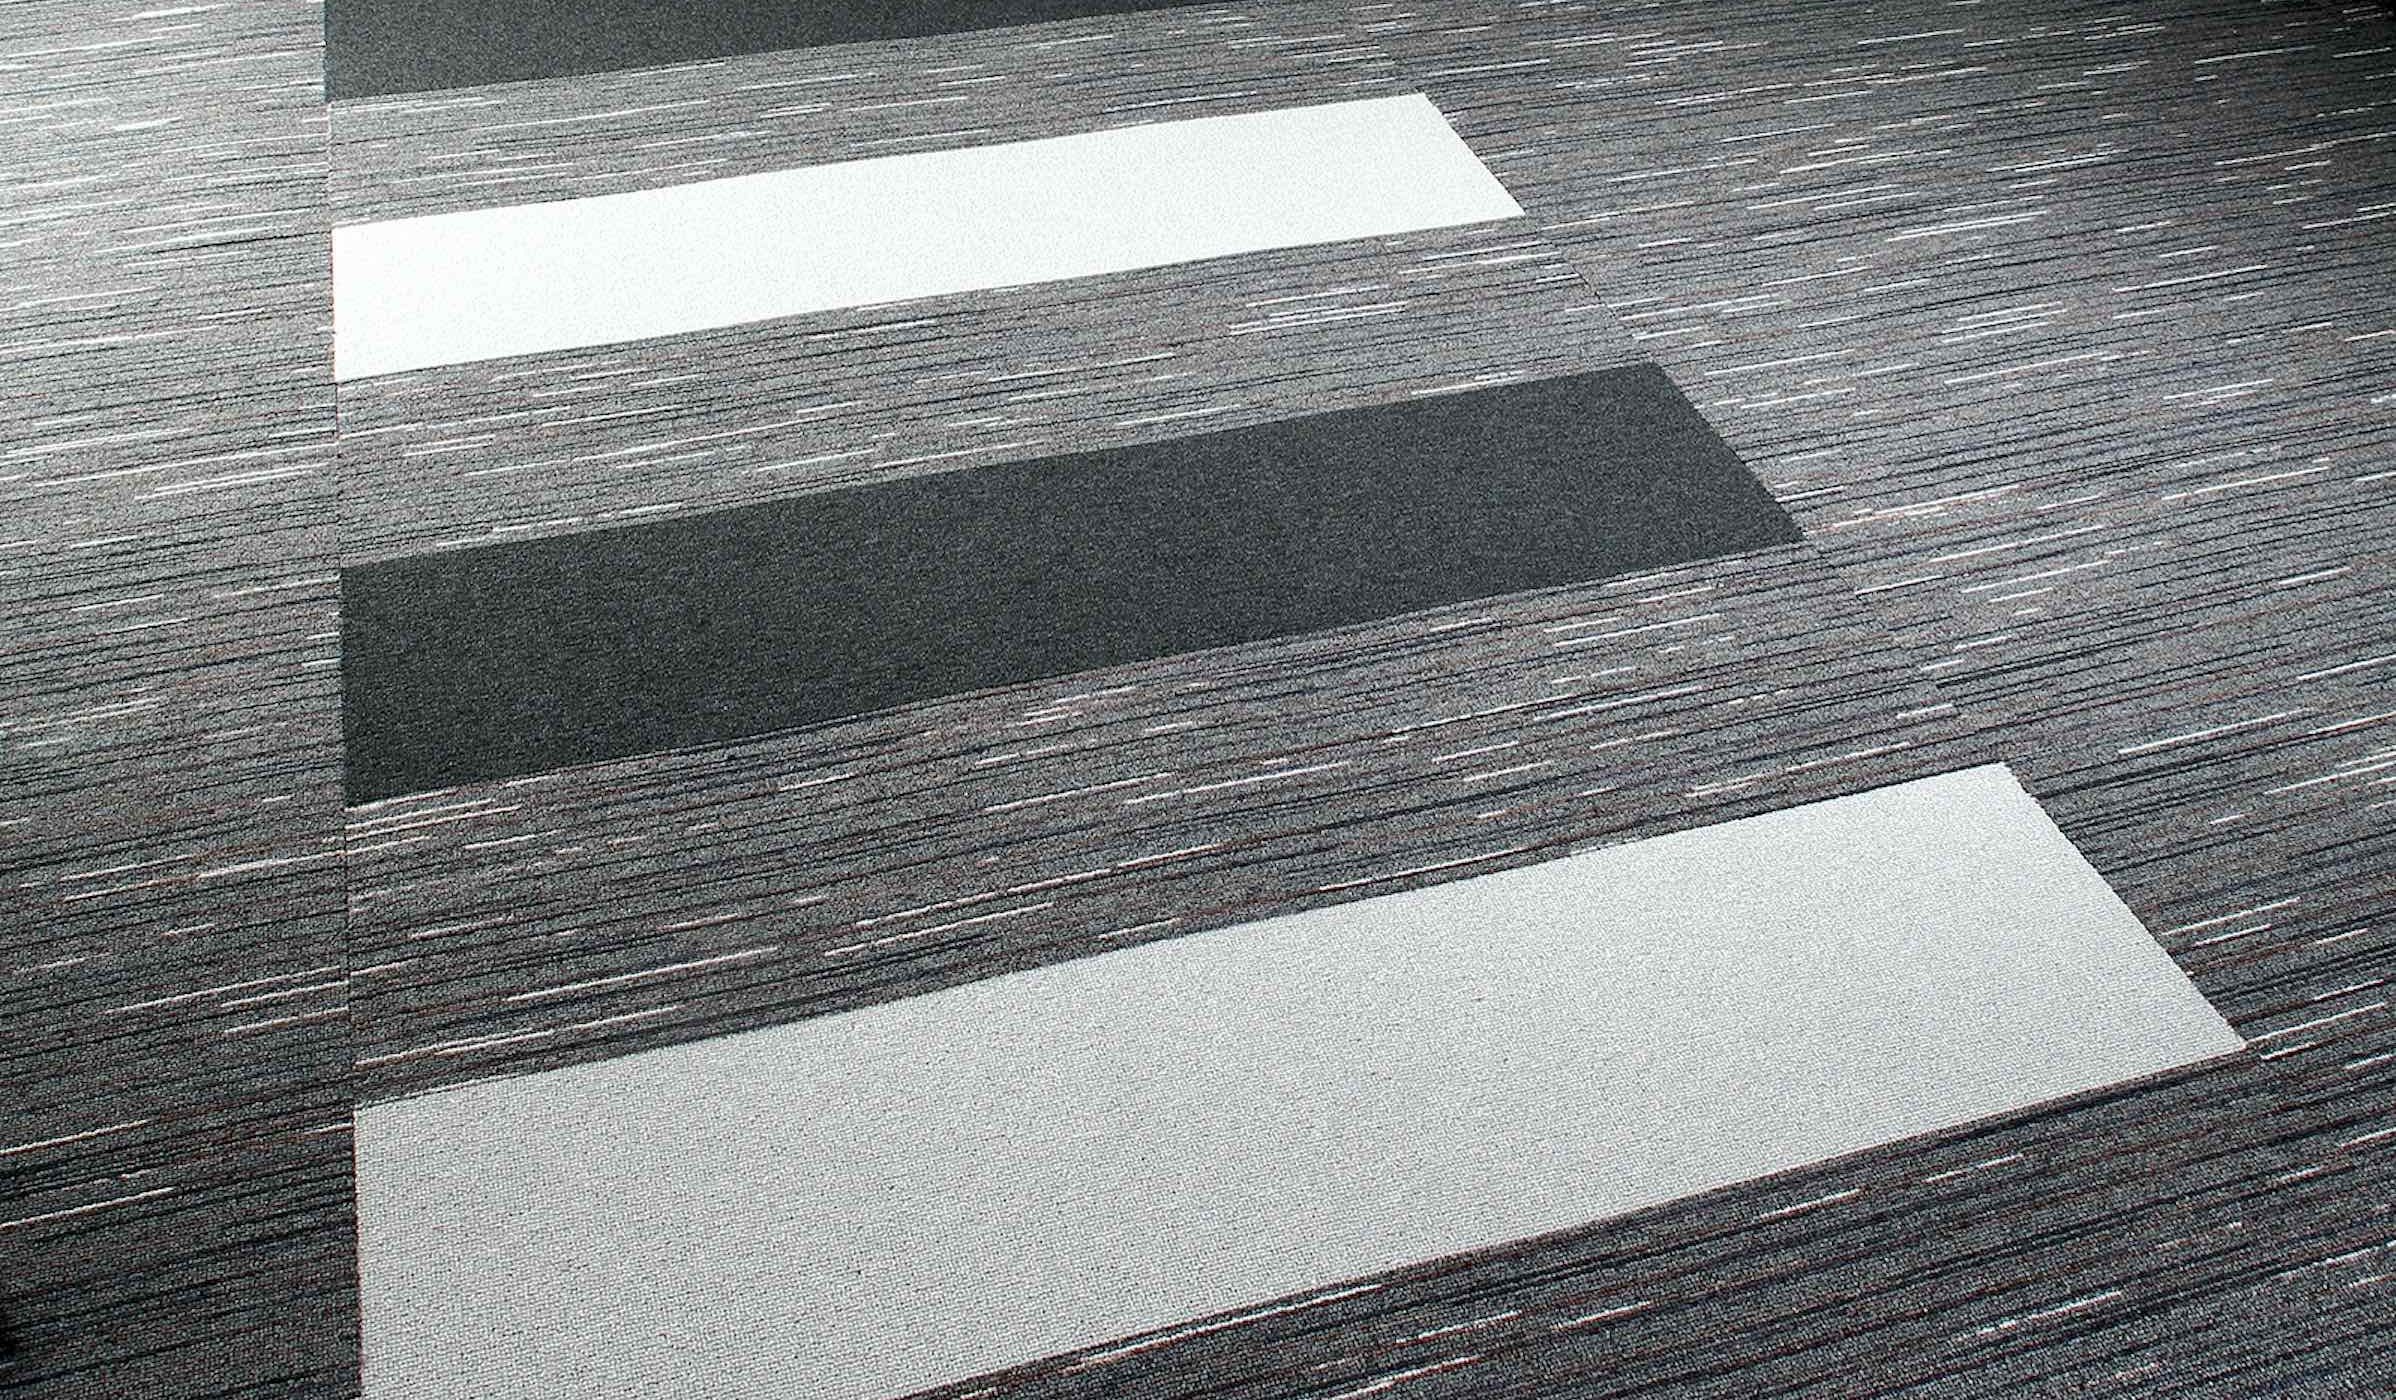 Design Dek | Paragon Carpet Tiles | Commercial Carpet Tiles | Design Carpet Tiles 3